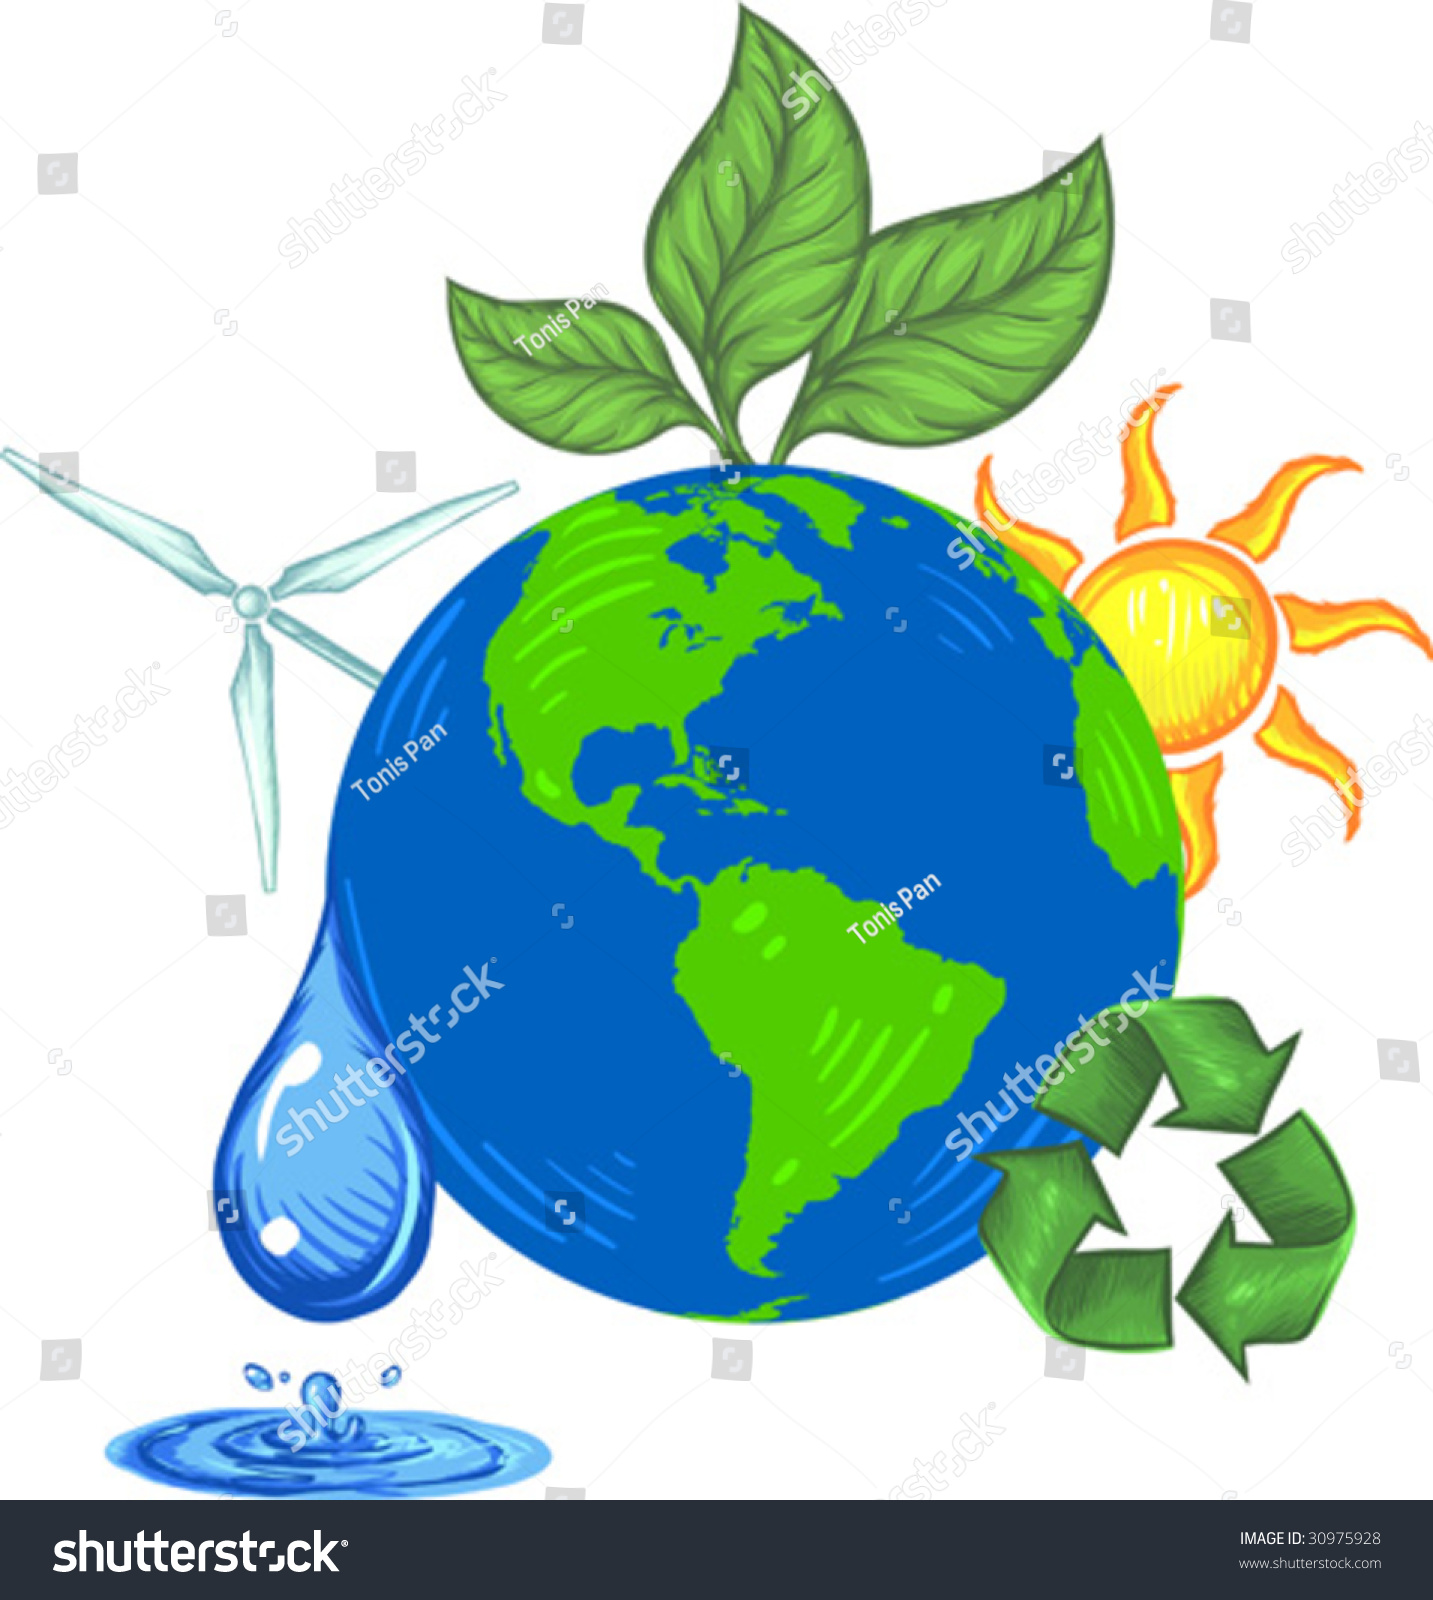 clipart save the earth - photo #37